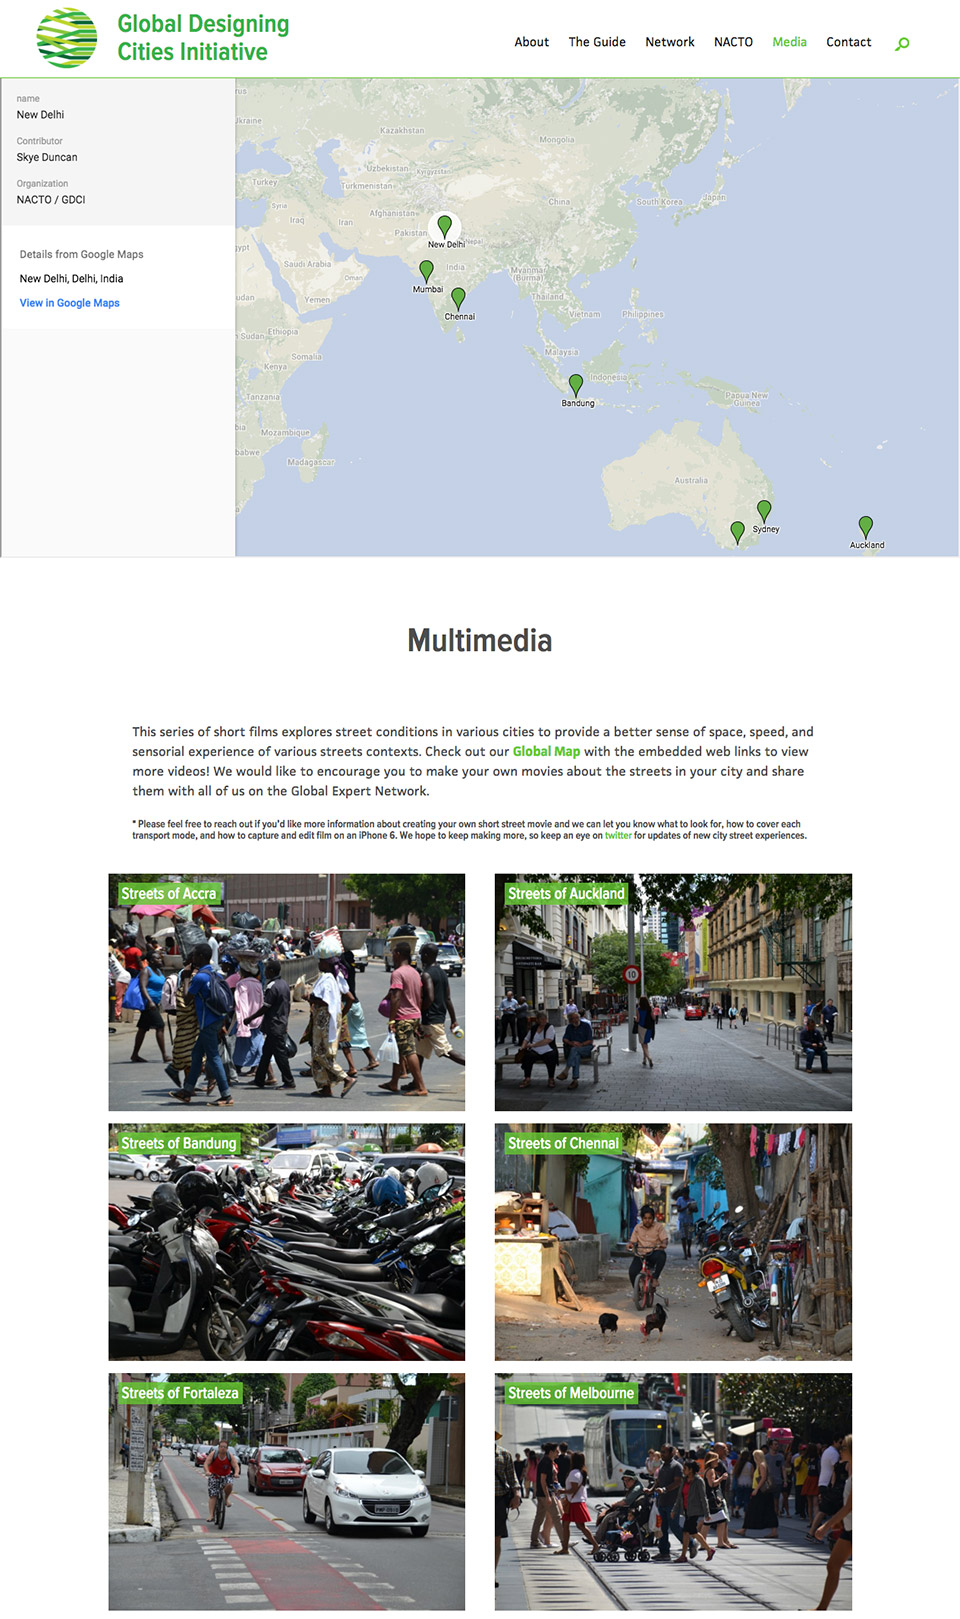 Interactive Map & Multimedia